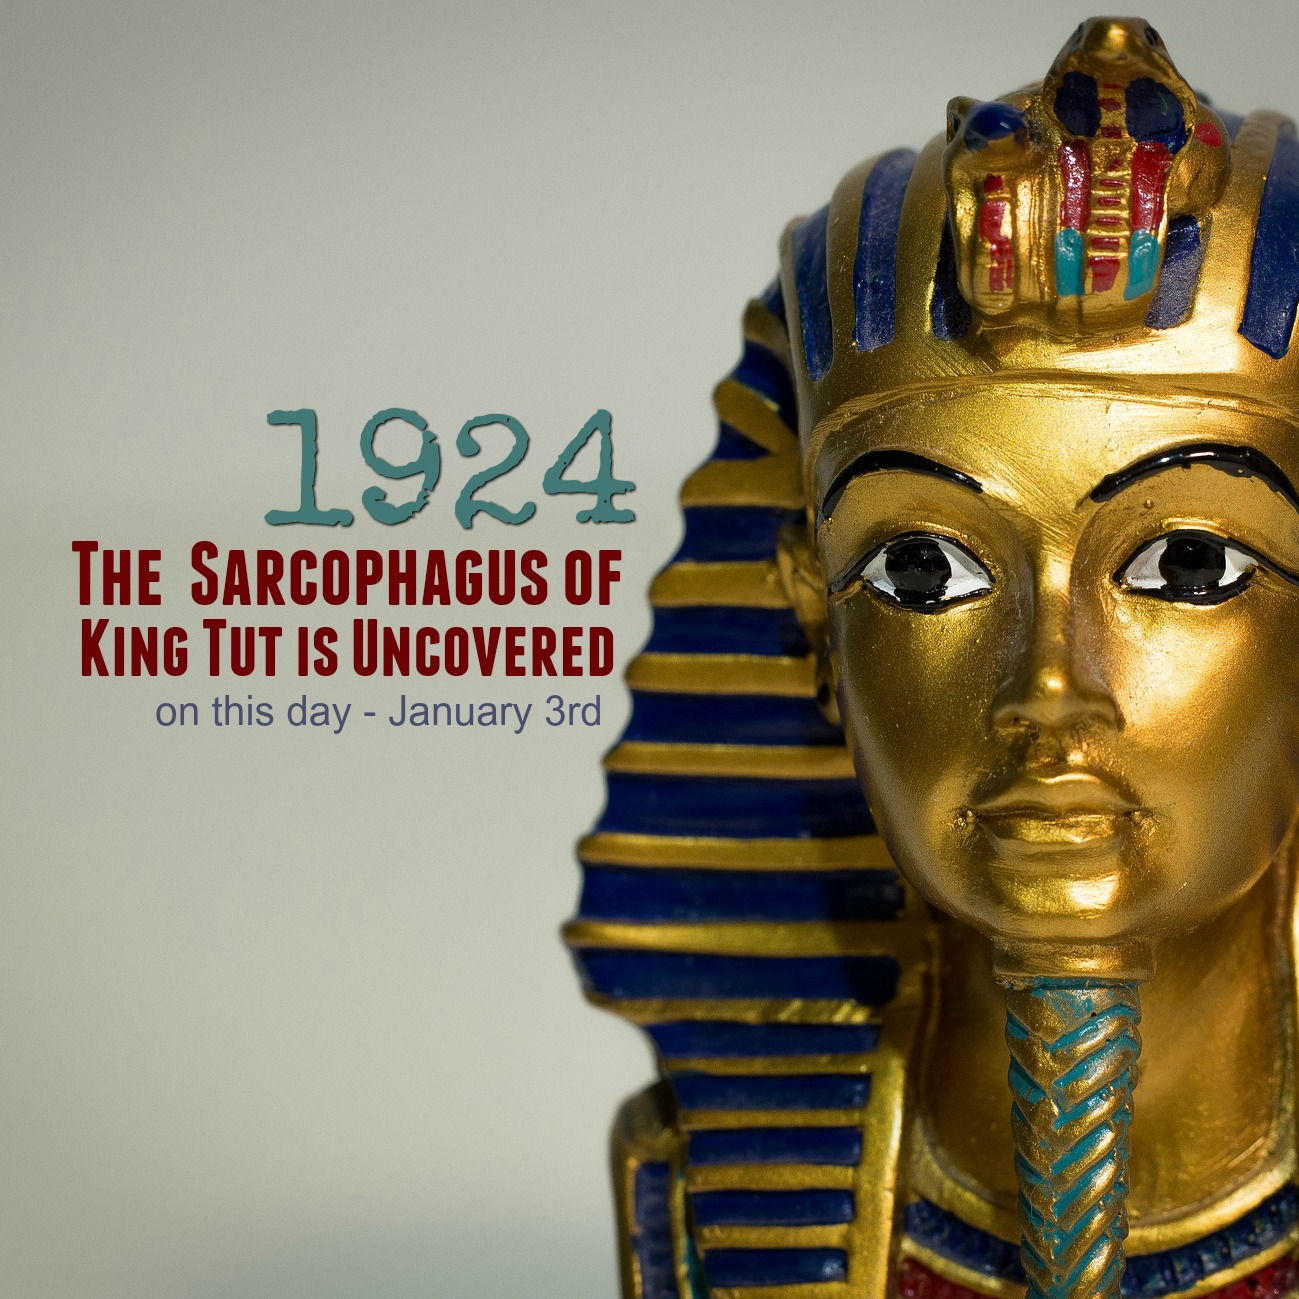 Uncategorized Pictures Of Sarcophagus 1924 sarcophagus of king tut uncovered on this day hip homeschool moms